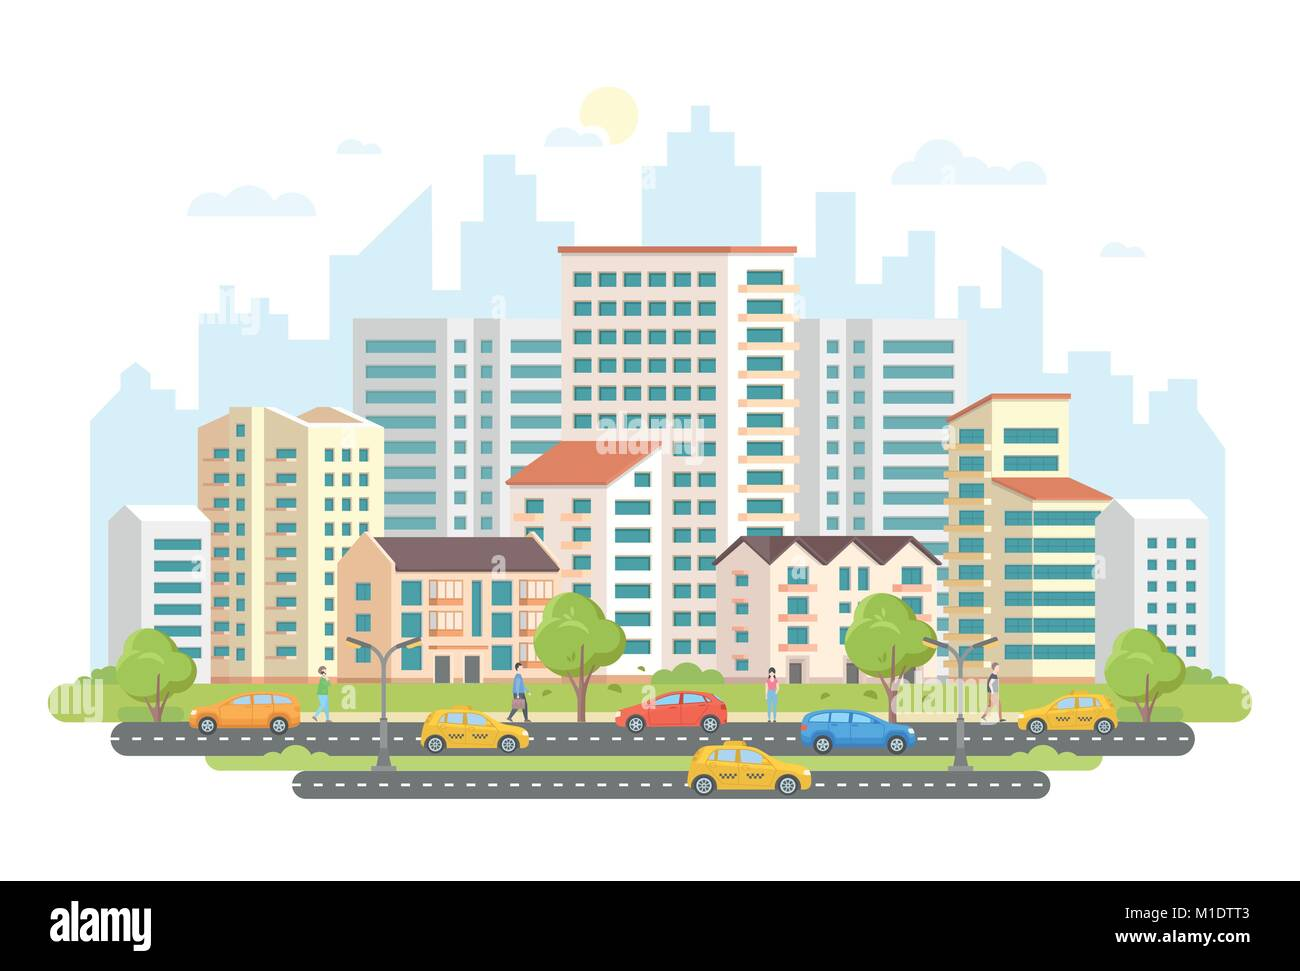 Busy street life - modern colorful flat vector illustration - Stock Image